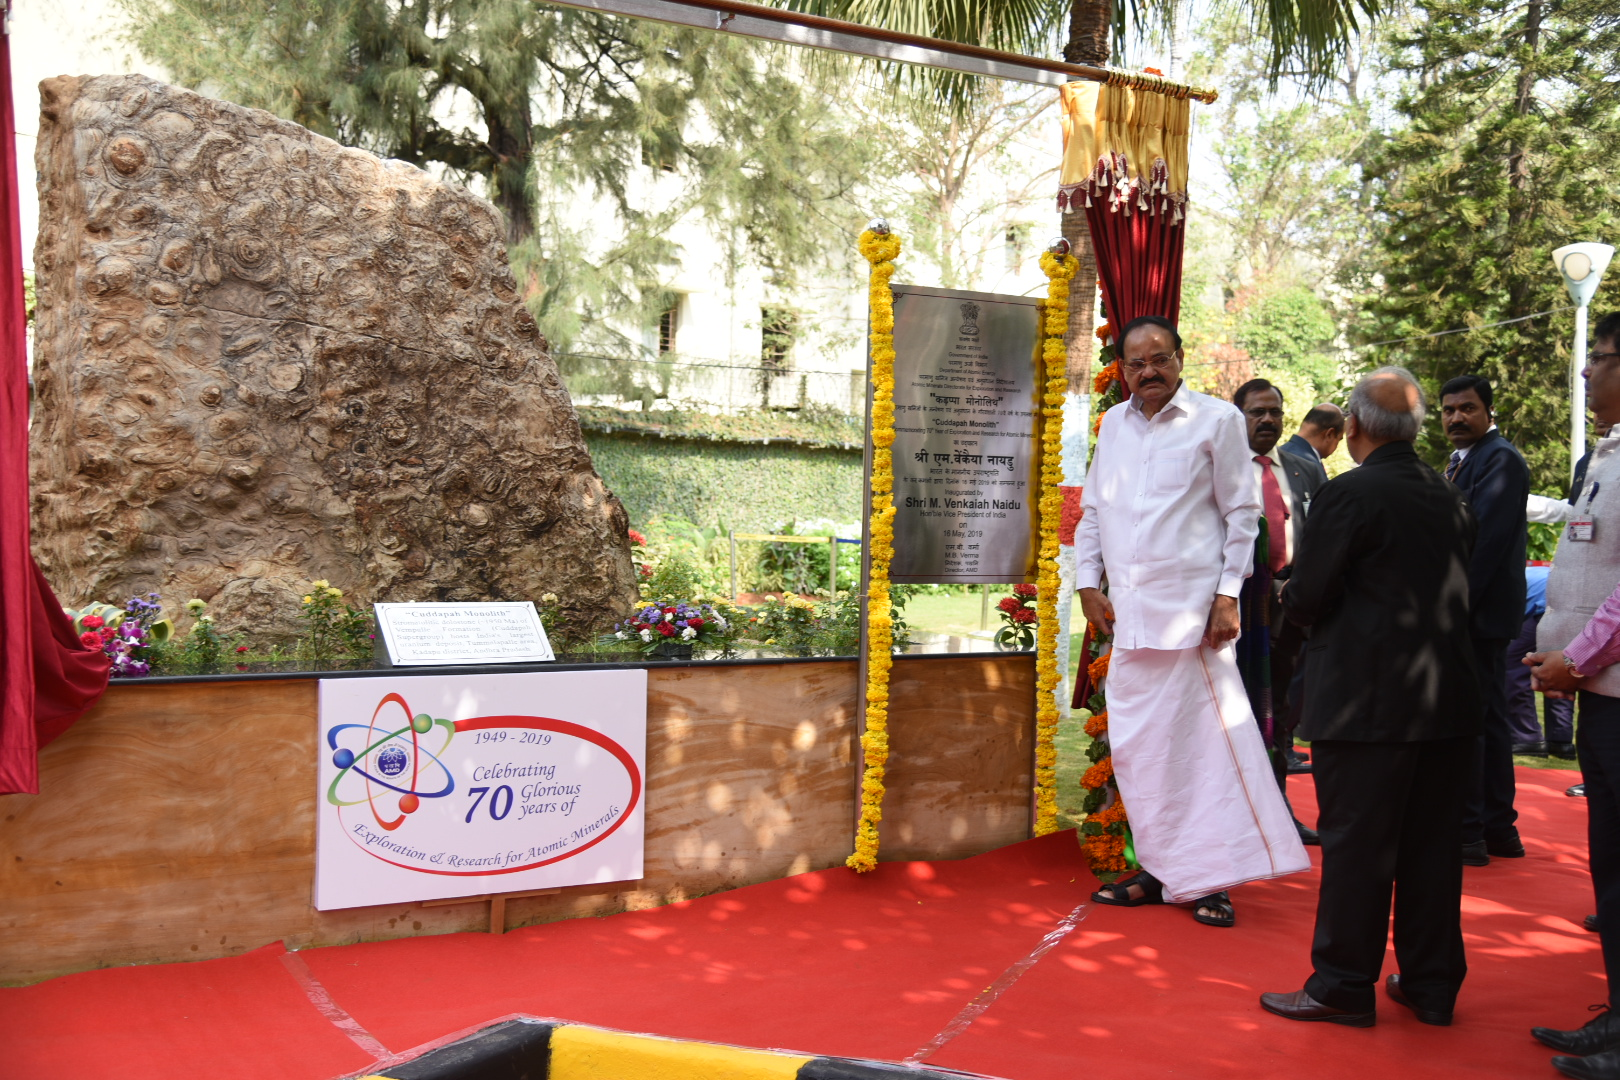 The Vice President, Shri M. Venkaiah Naidu unveiling the plaque of 'Cuddapah Monolith', commemorating 70th Year of Exploration and Research of Atomic Minerals, at the Atomic Minerals Directorate for Exploration and Research, in Hyderabad on May 16, 2019.